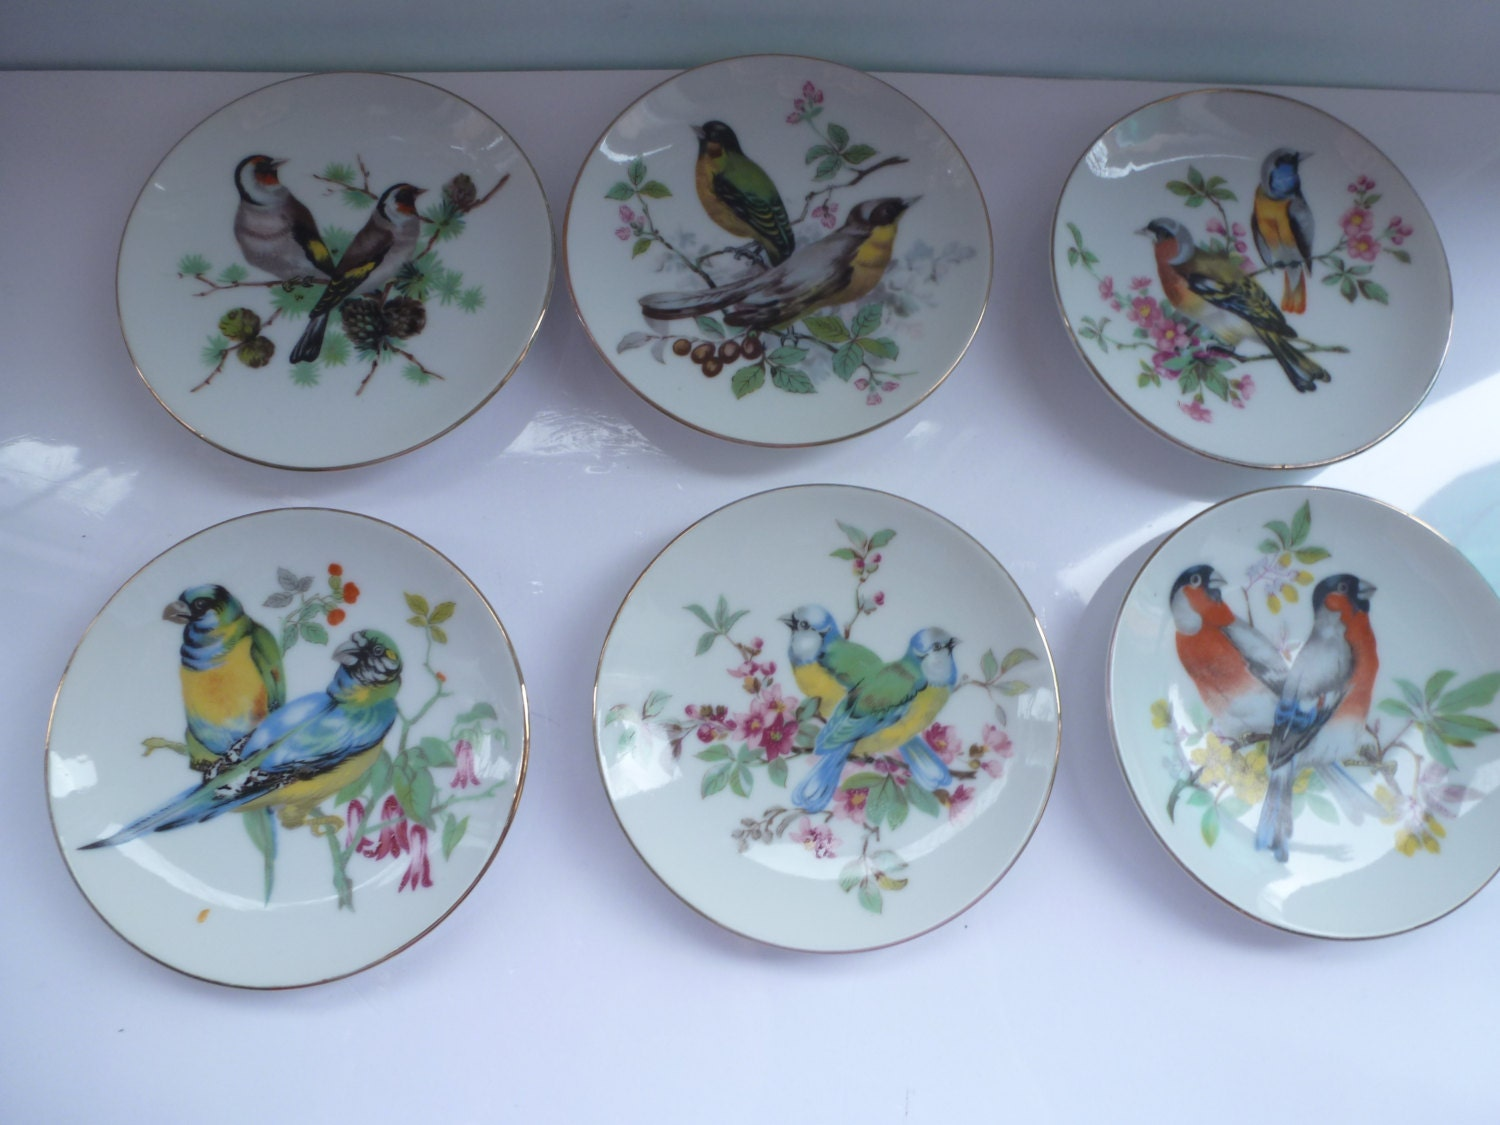 Vintage plates decorative hanging plates with bird for Decoration plater